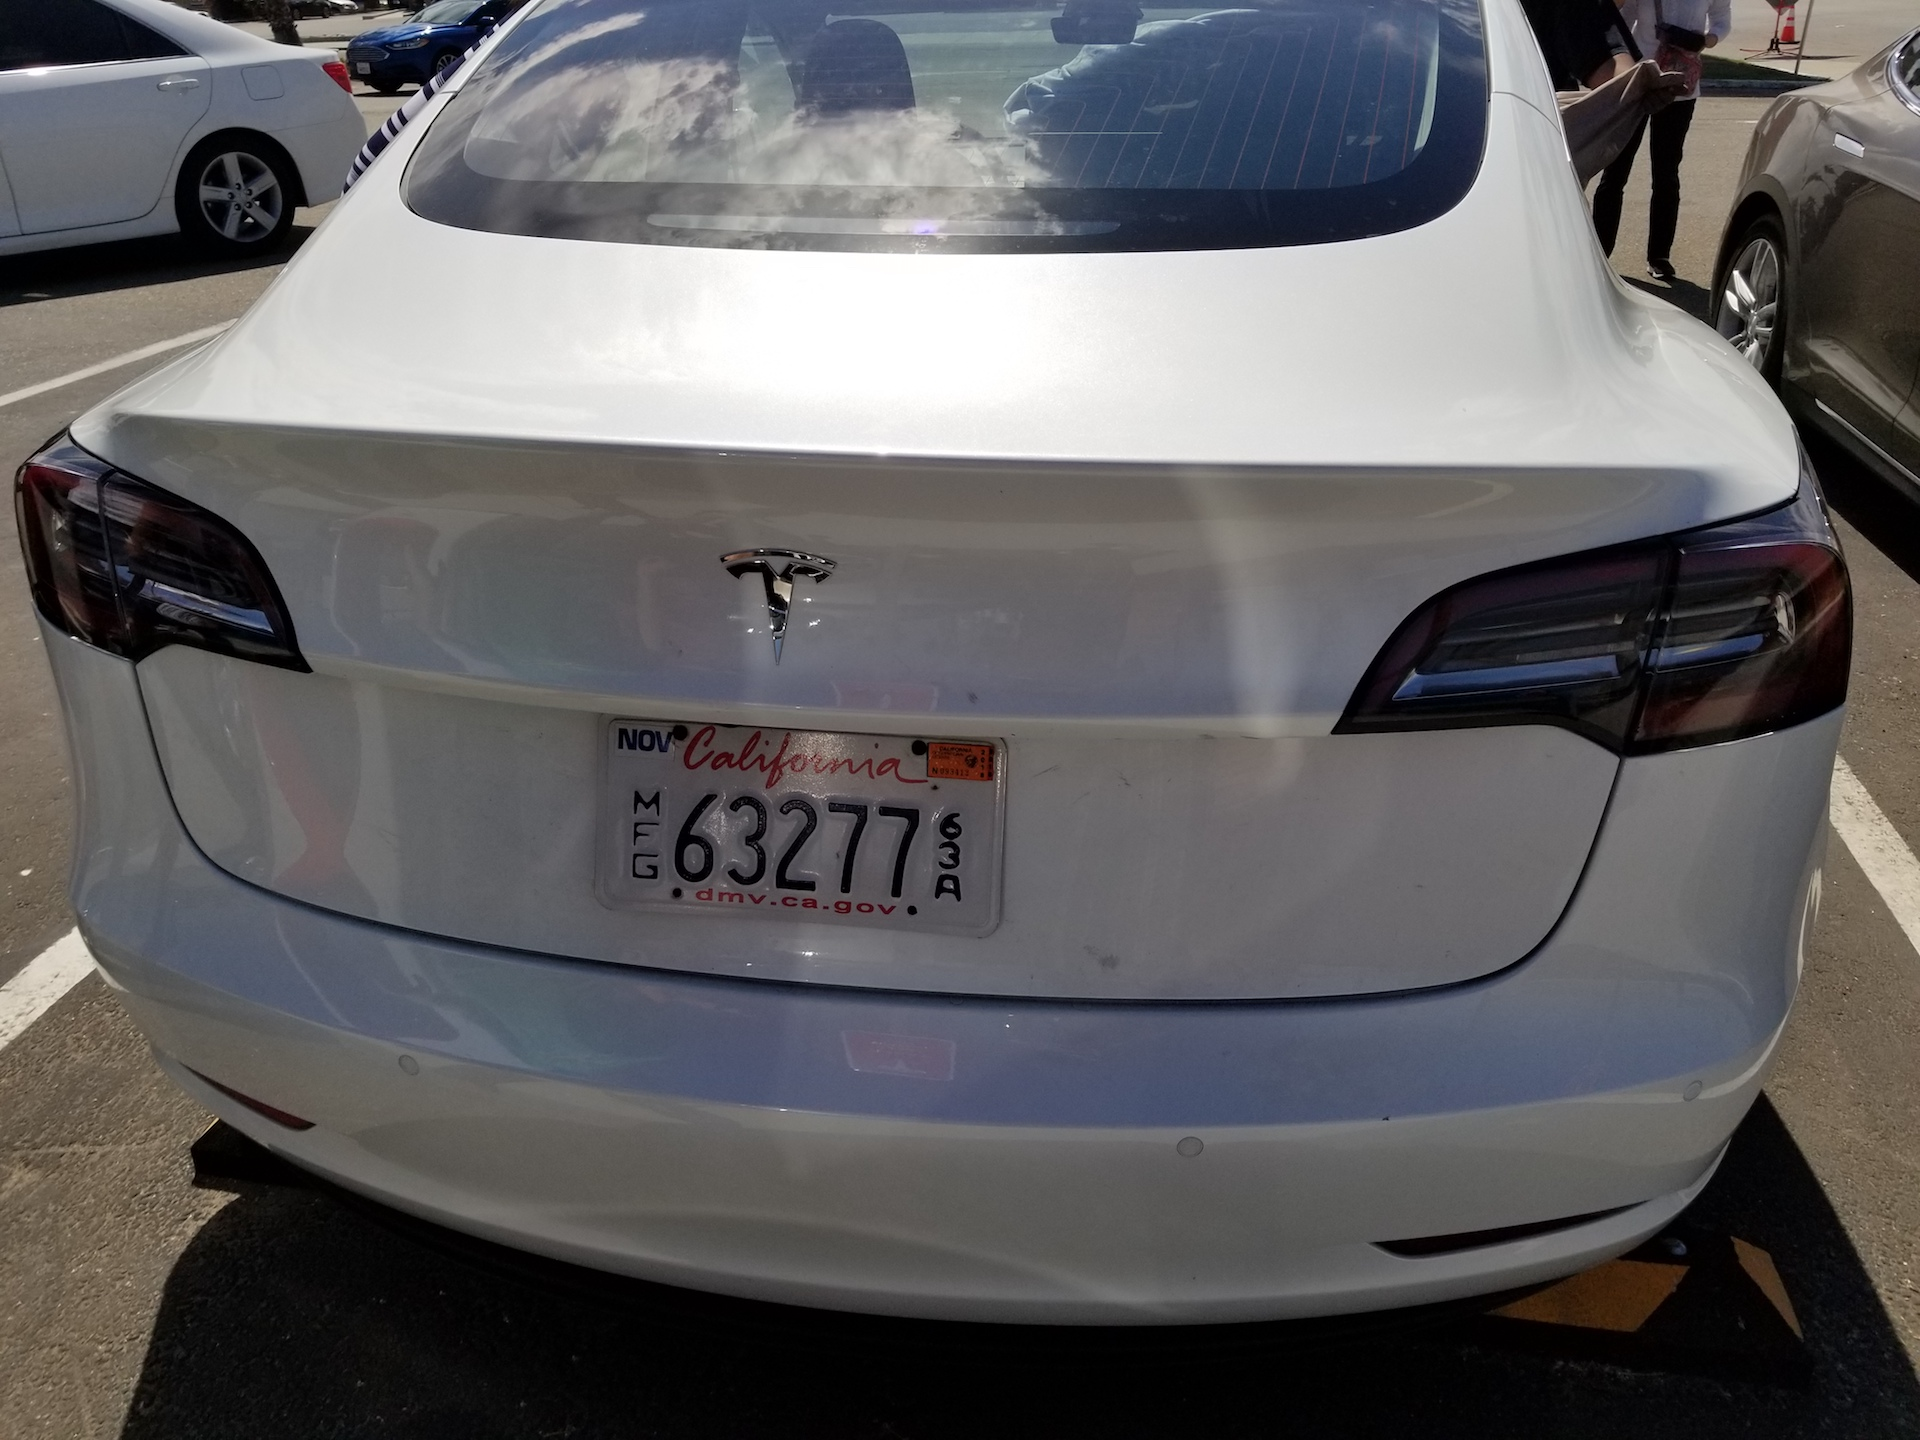 white-tesla-model-3-trunk-bakersfield-sighting